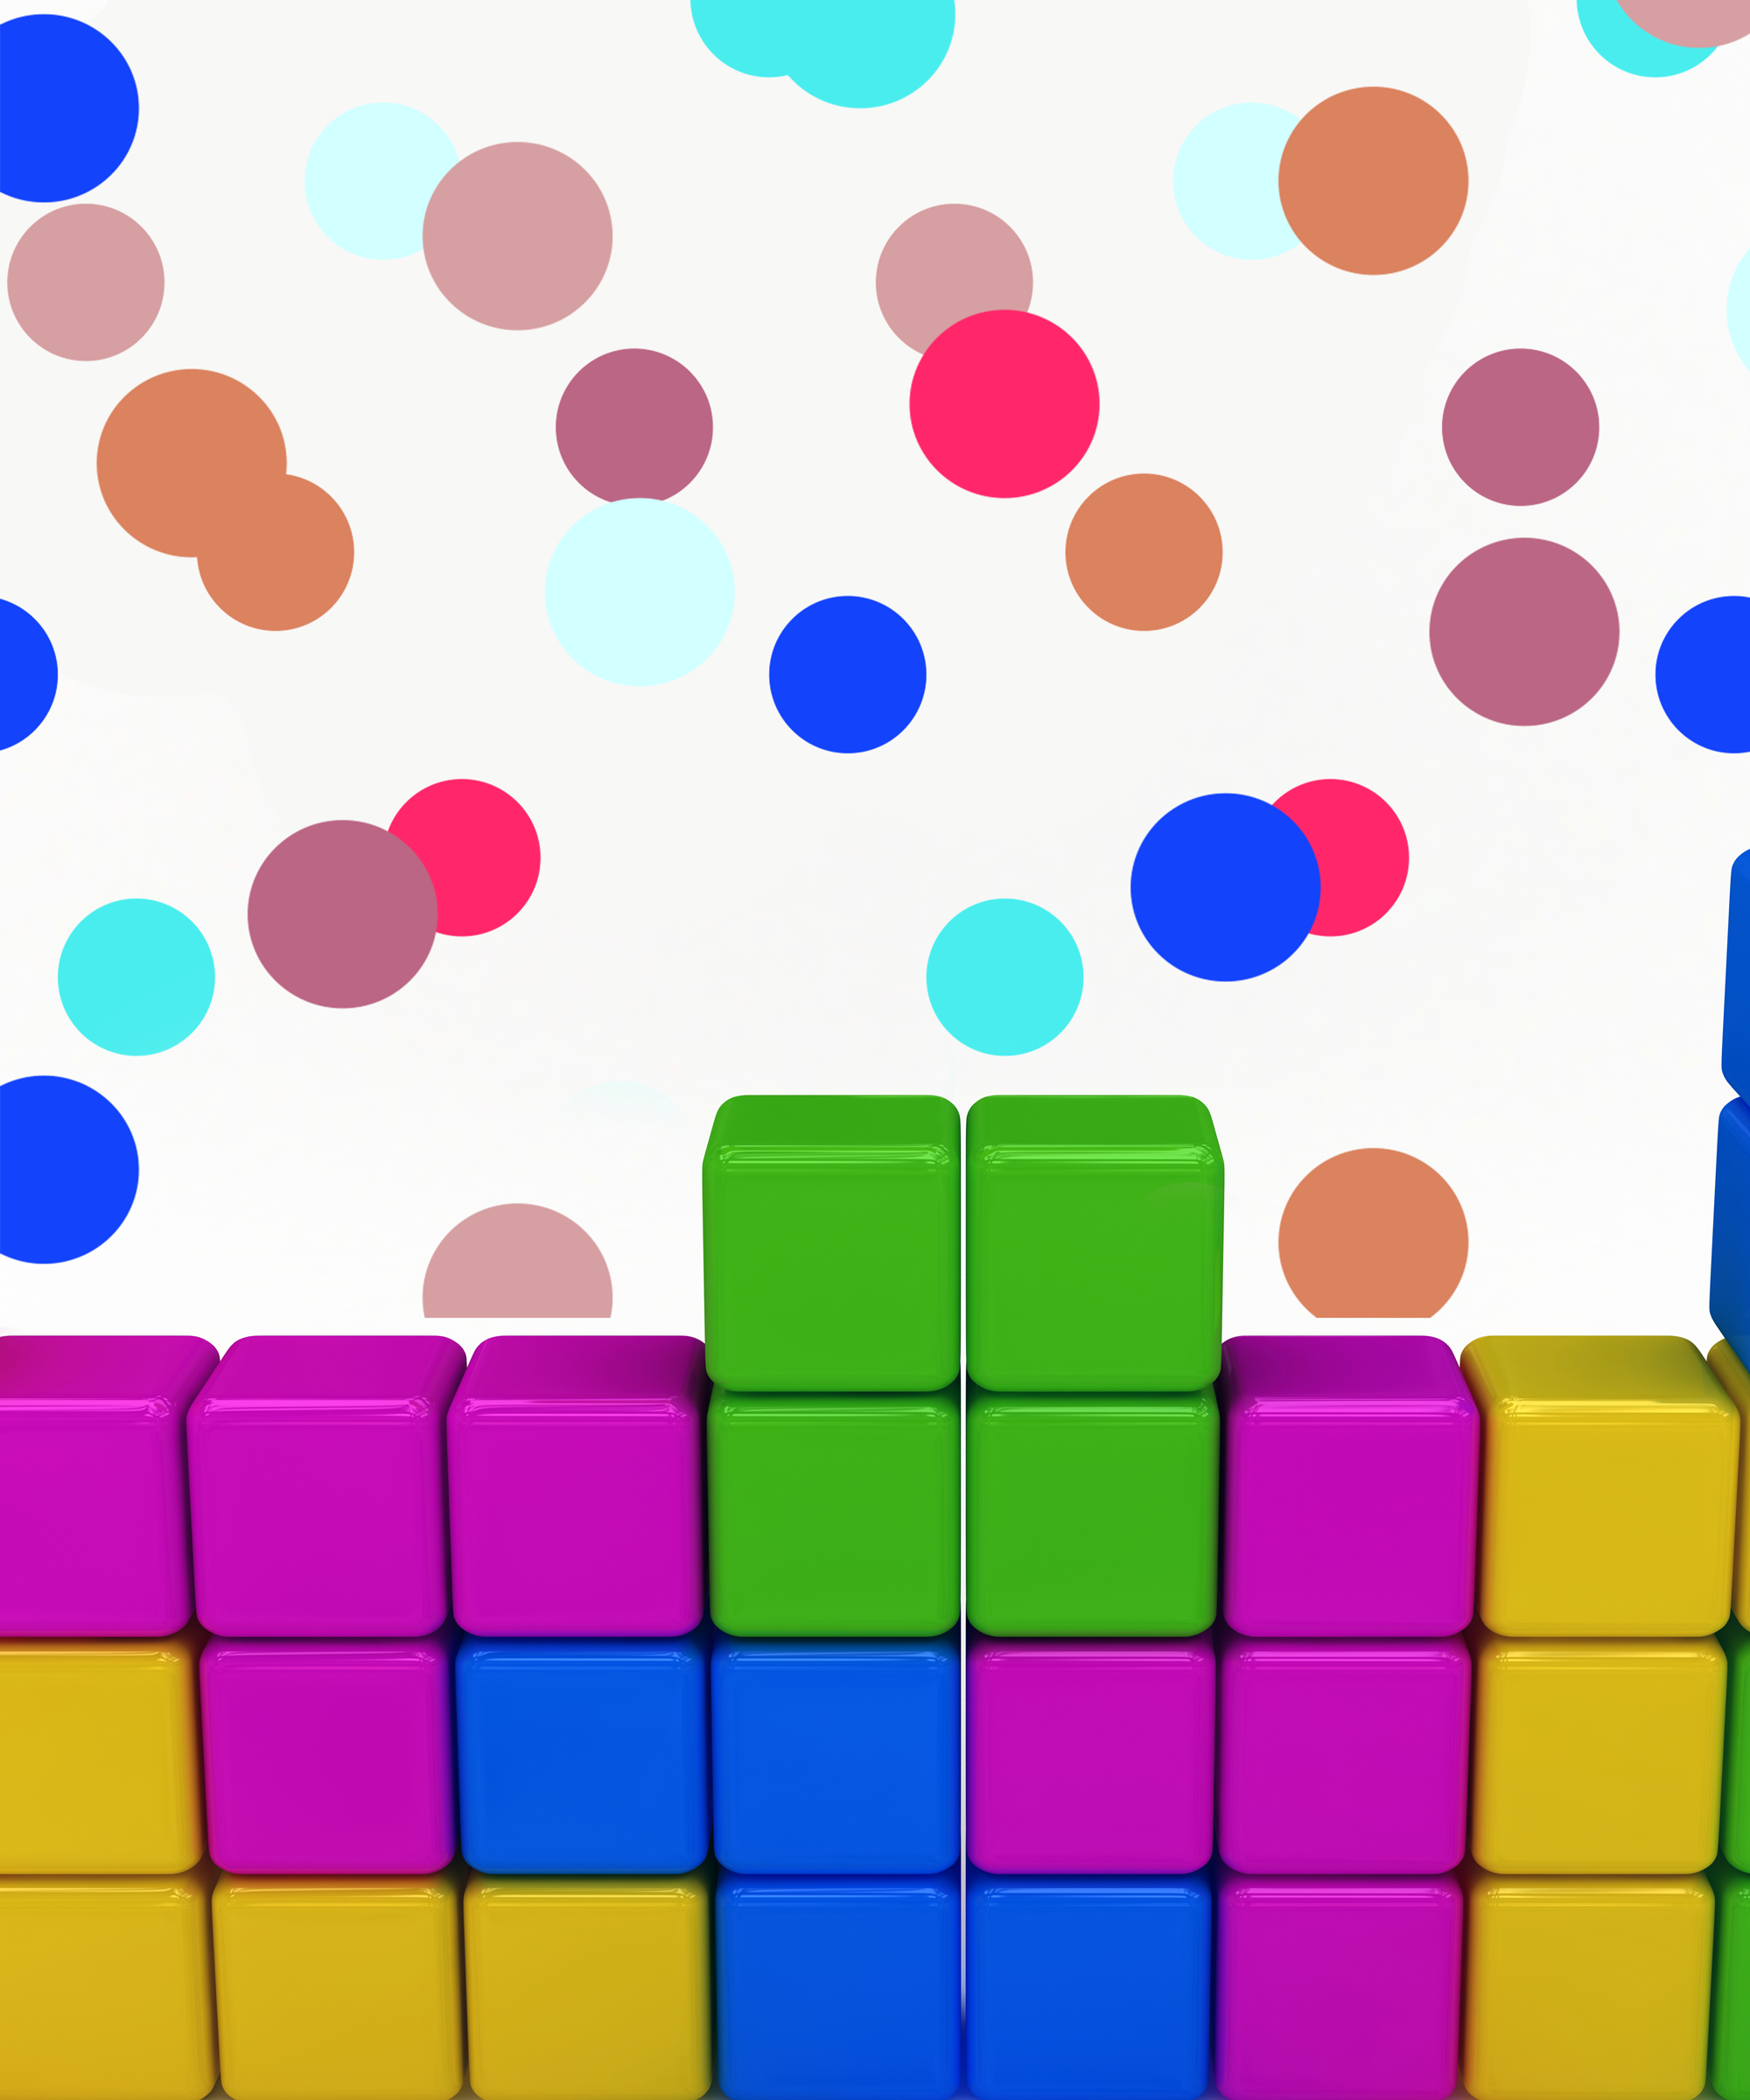 Playing Tetris 'can help ward off symptoms of post-traumatic stress disorder'